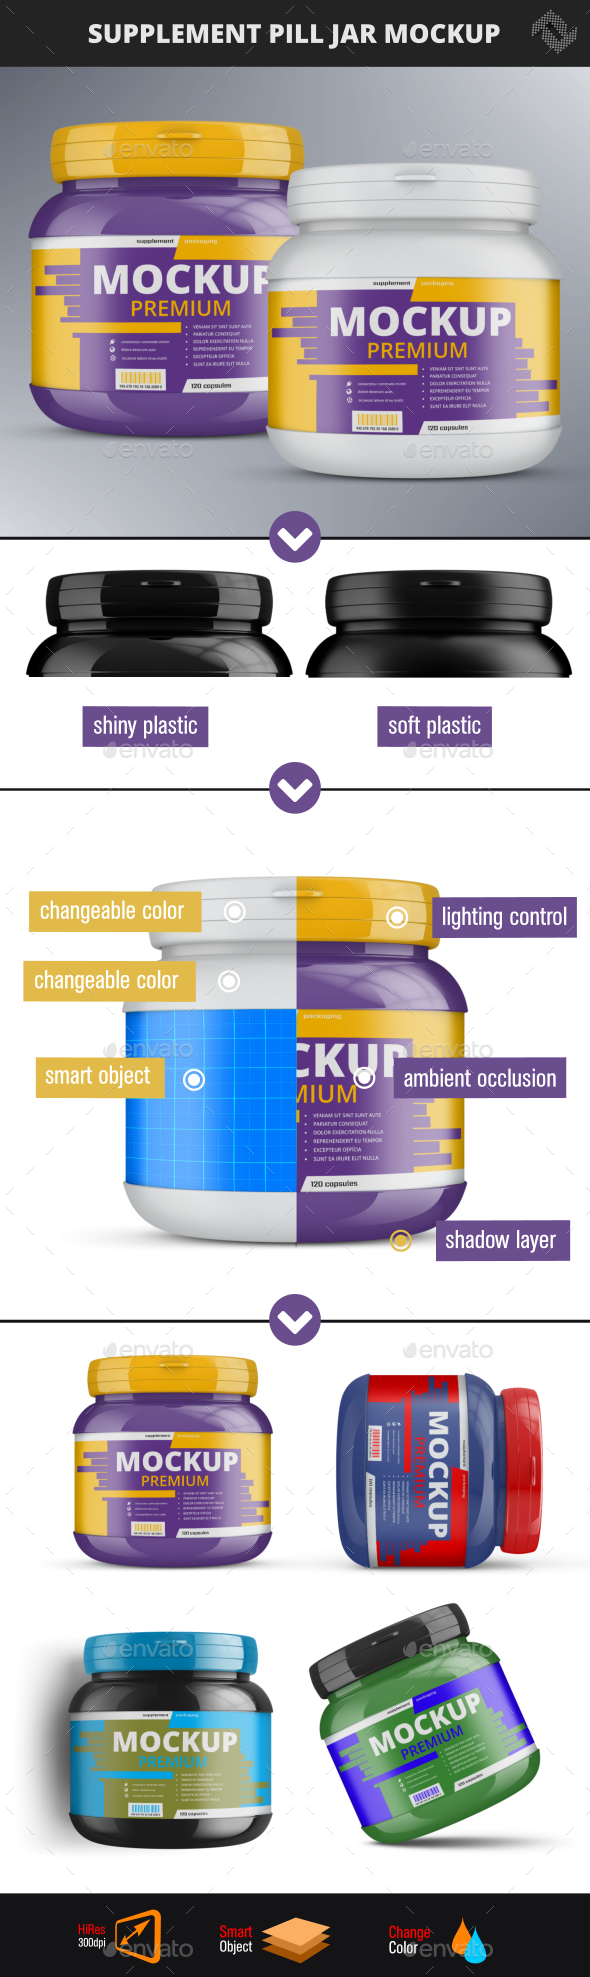 Supplement Pill Jar Mockup - Packaging Product Mock-Ups